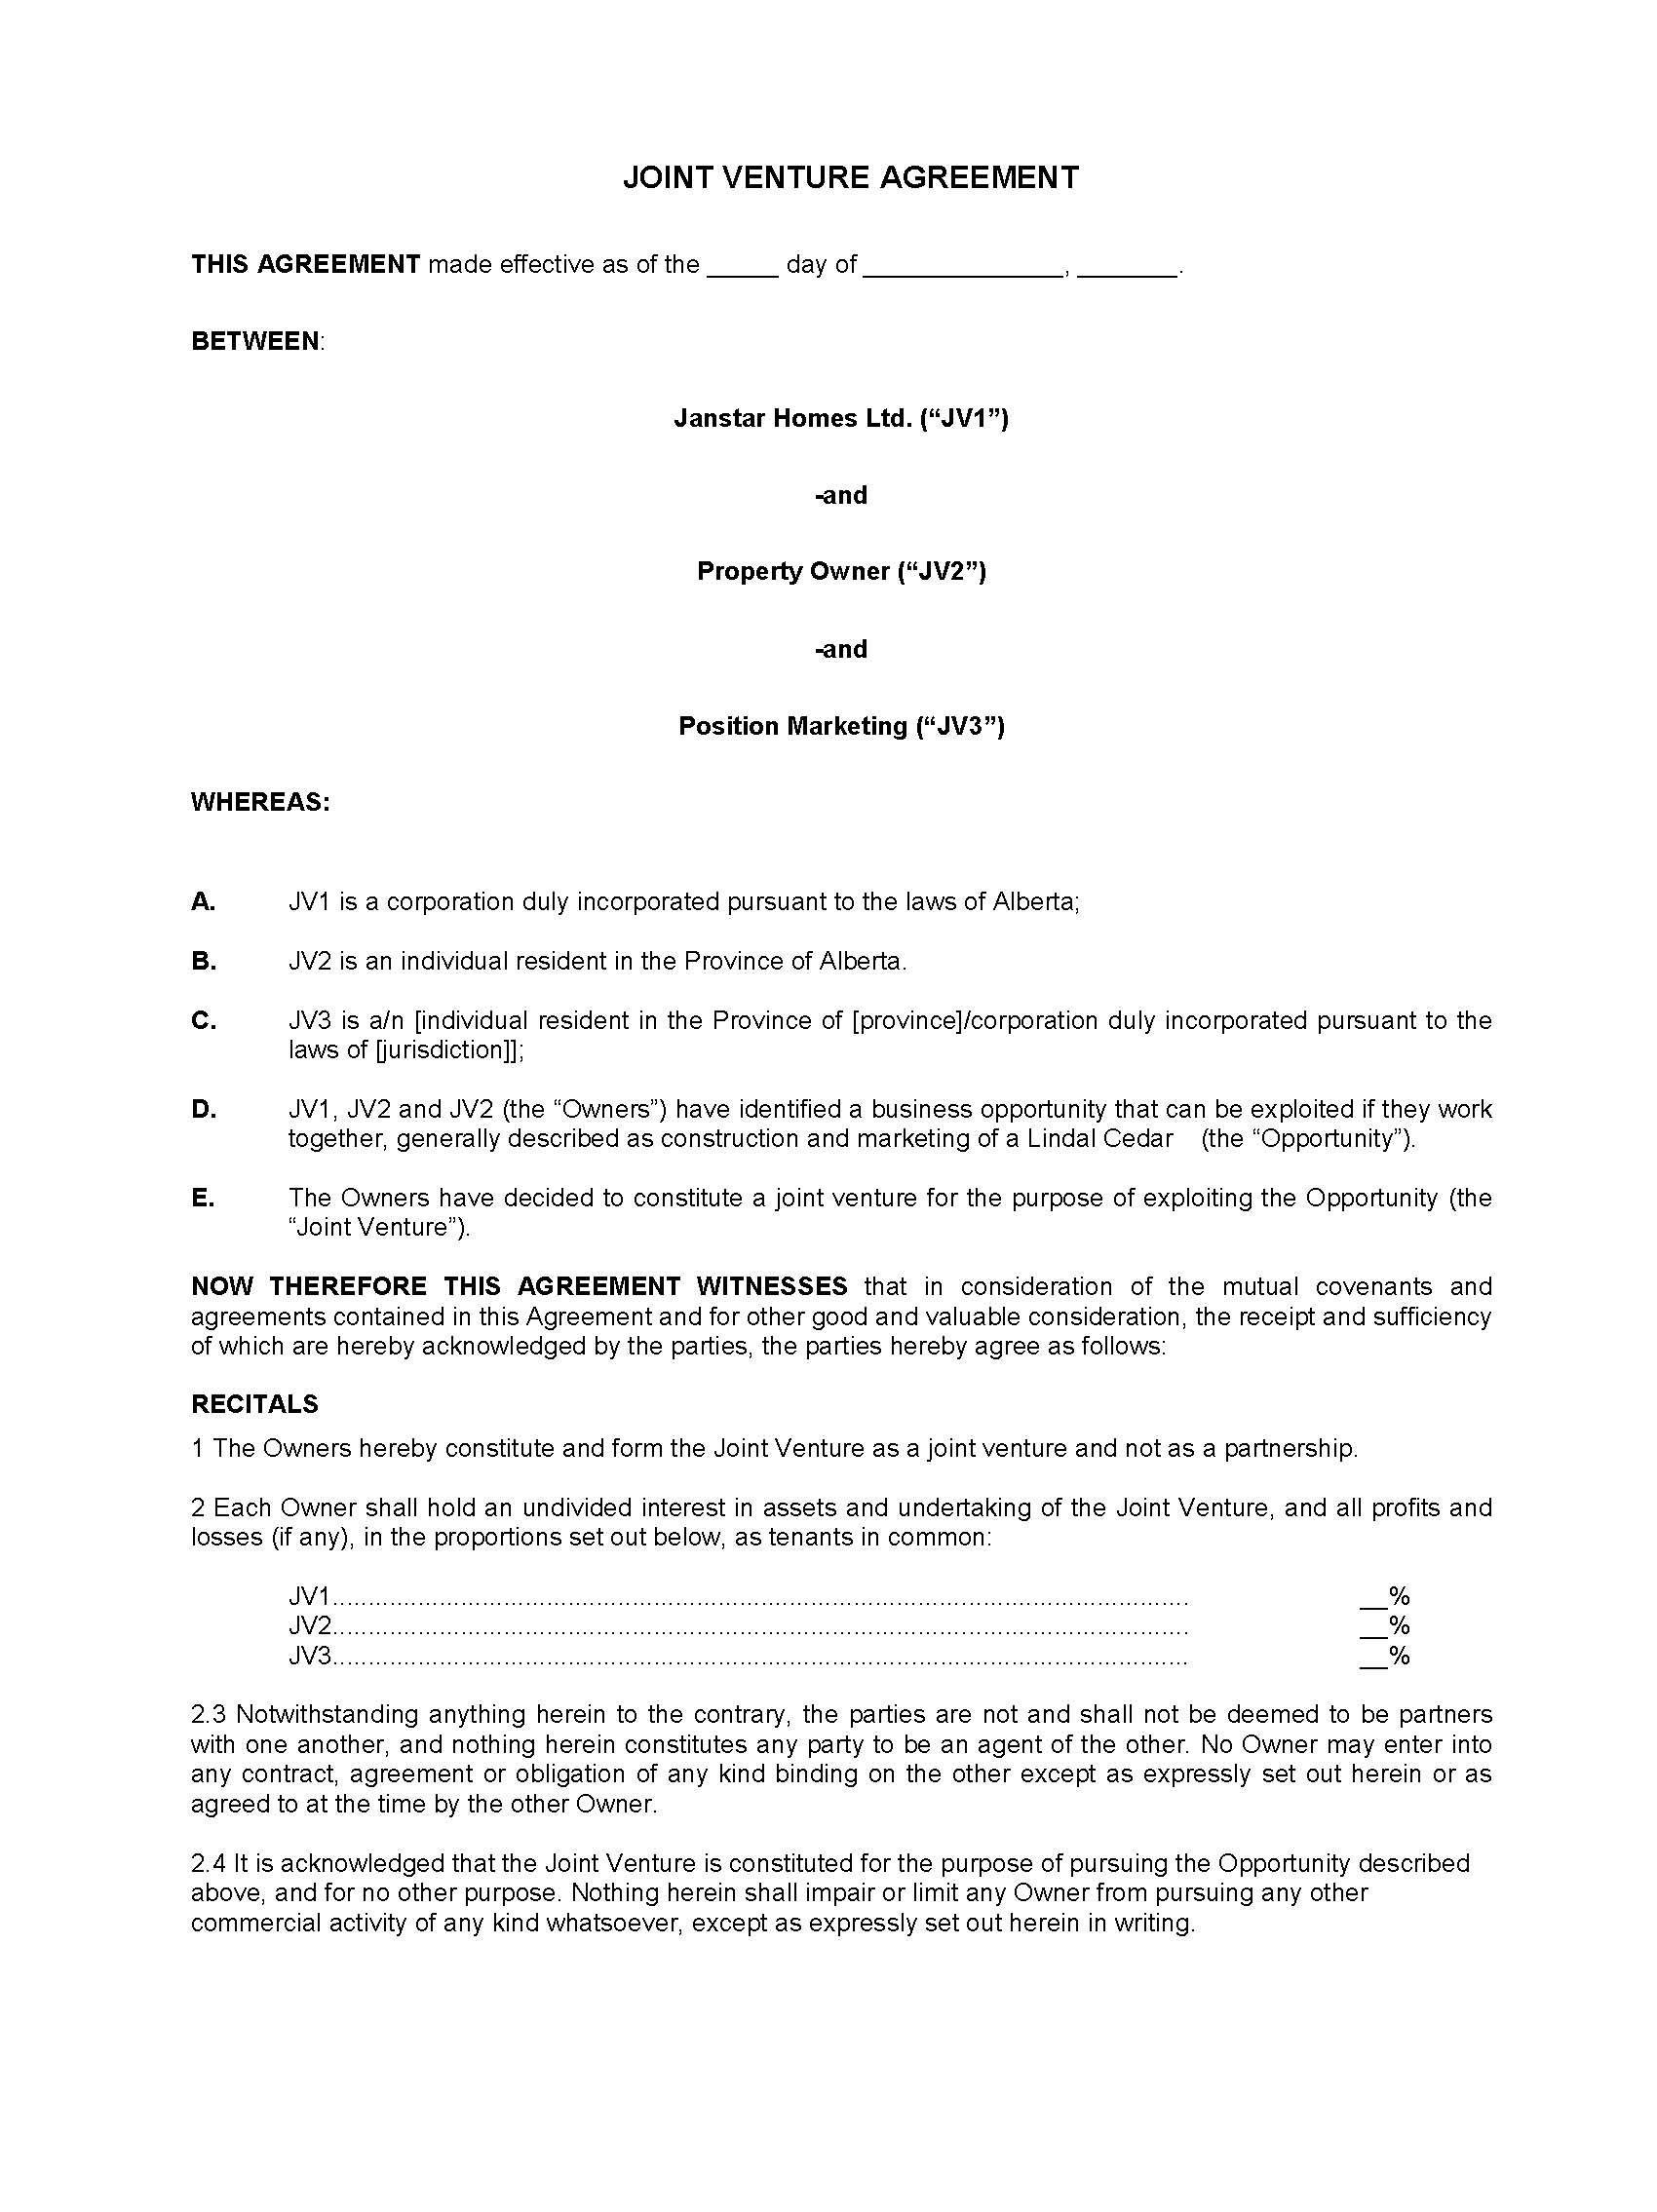 joint venture agreement sample word format – Joint Venture Agreement Sample Word Format